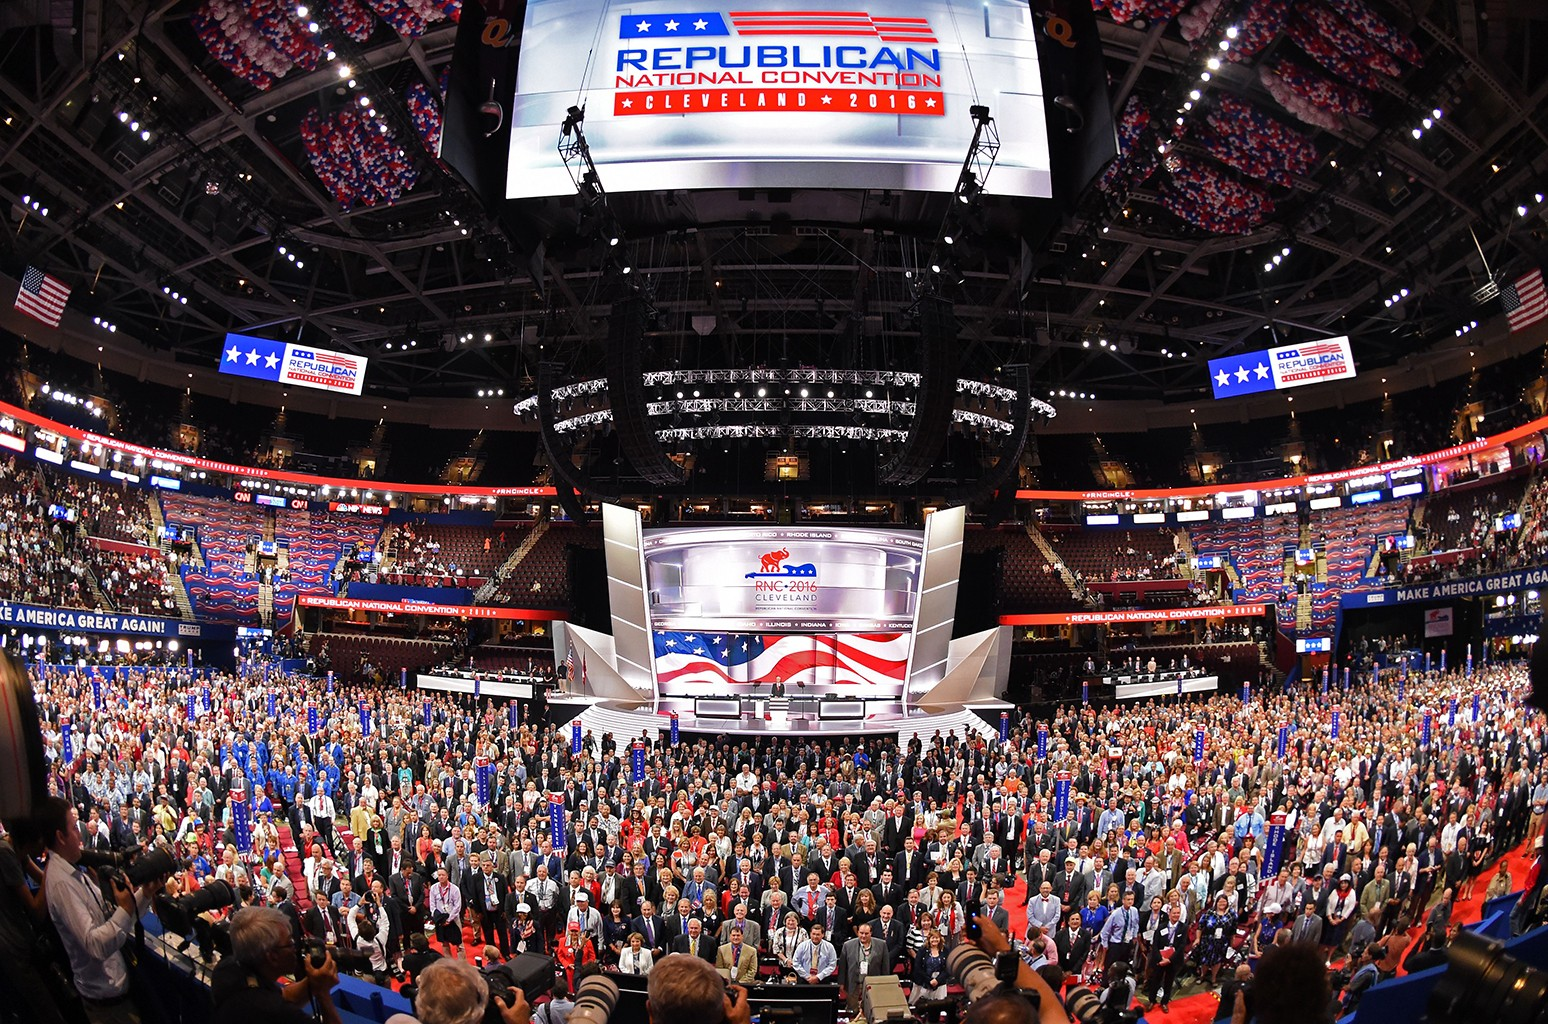 Republican National Convention at the Quicken Loans arena